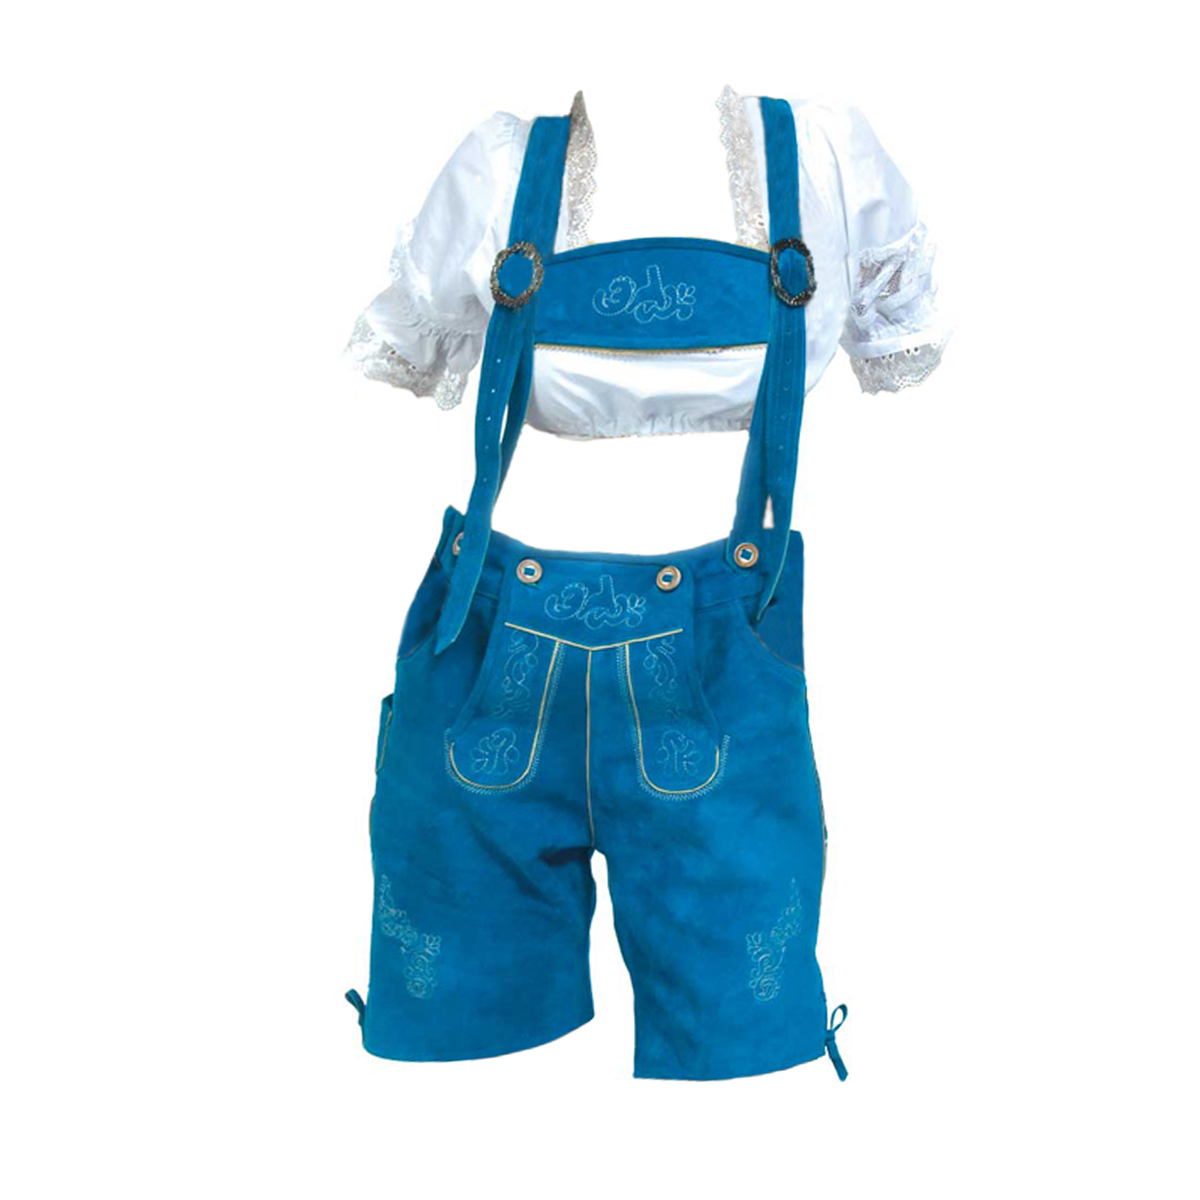 LADIES BLUE SHORT LEDERHOSEN